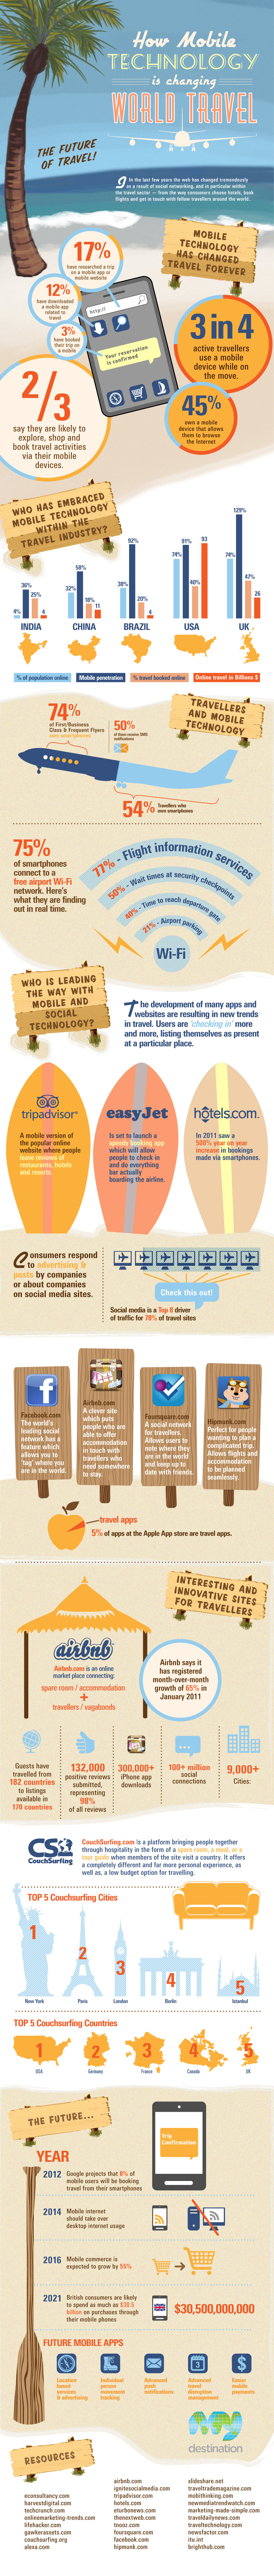 travel infographic How Mobile Technology is Changing World Travel